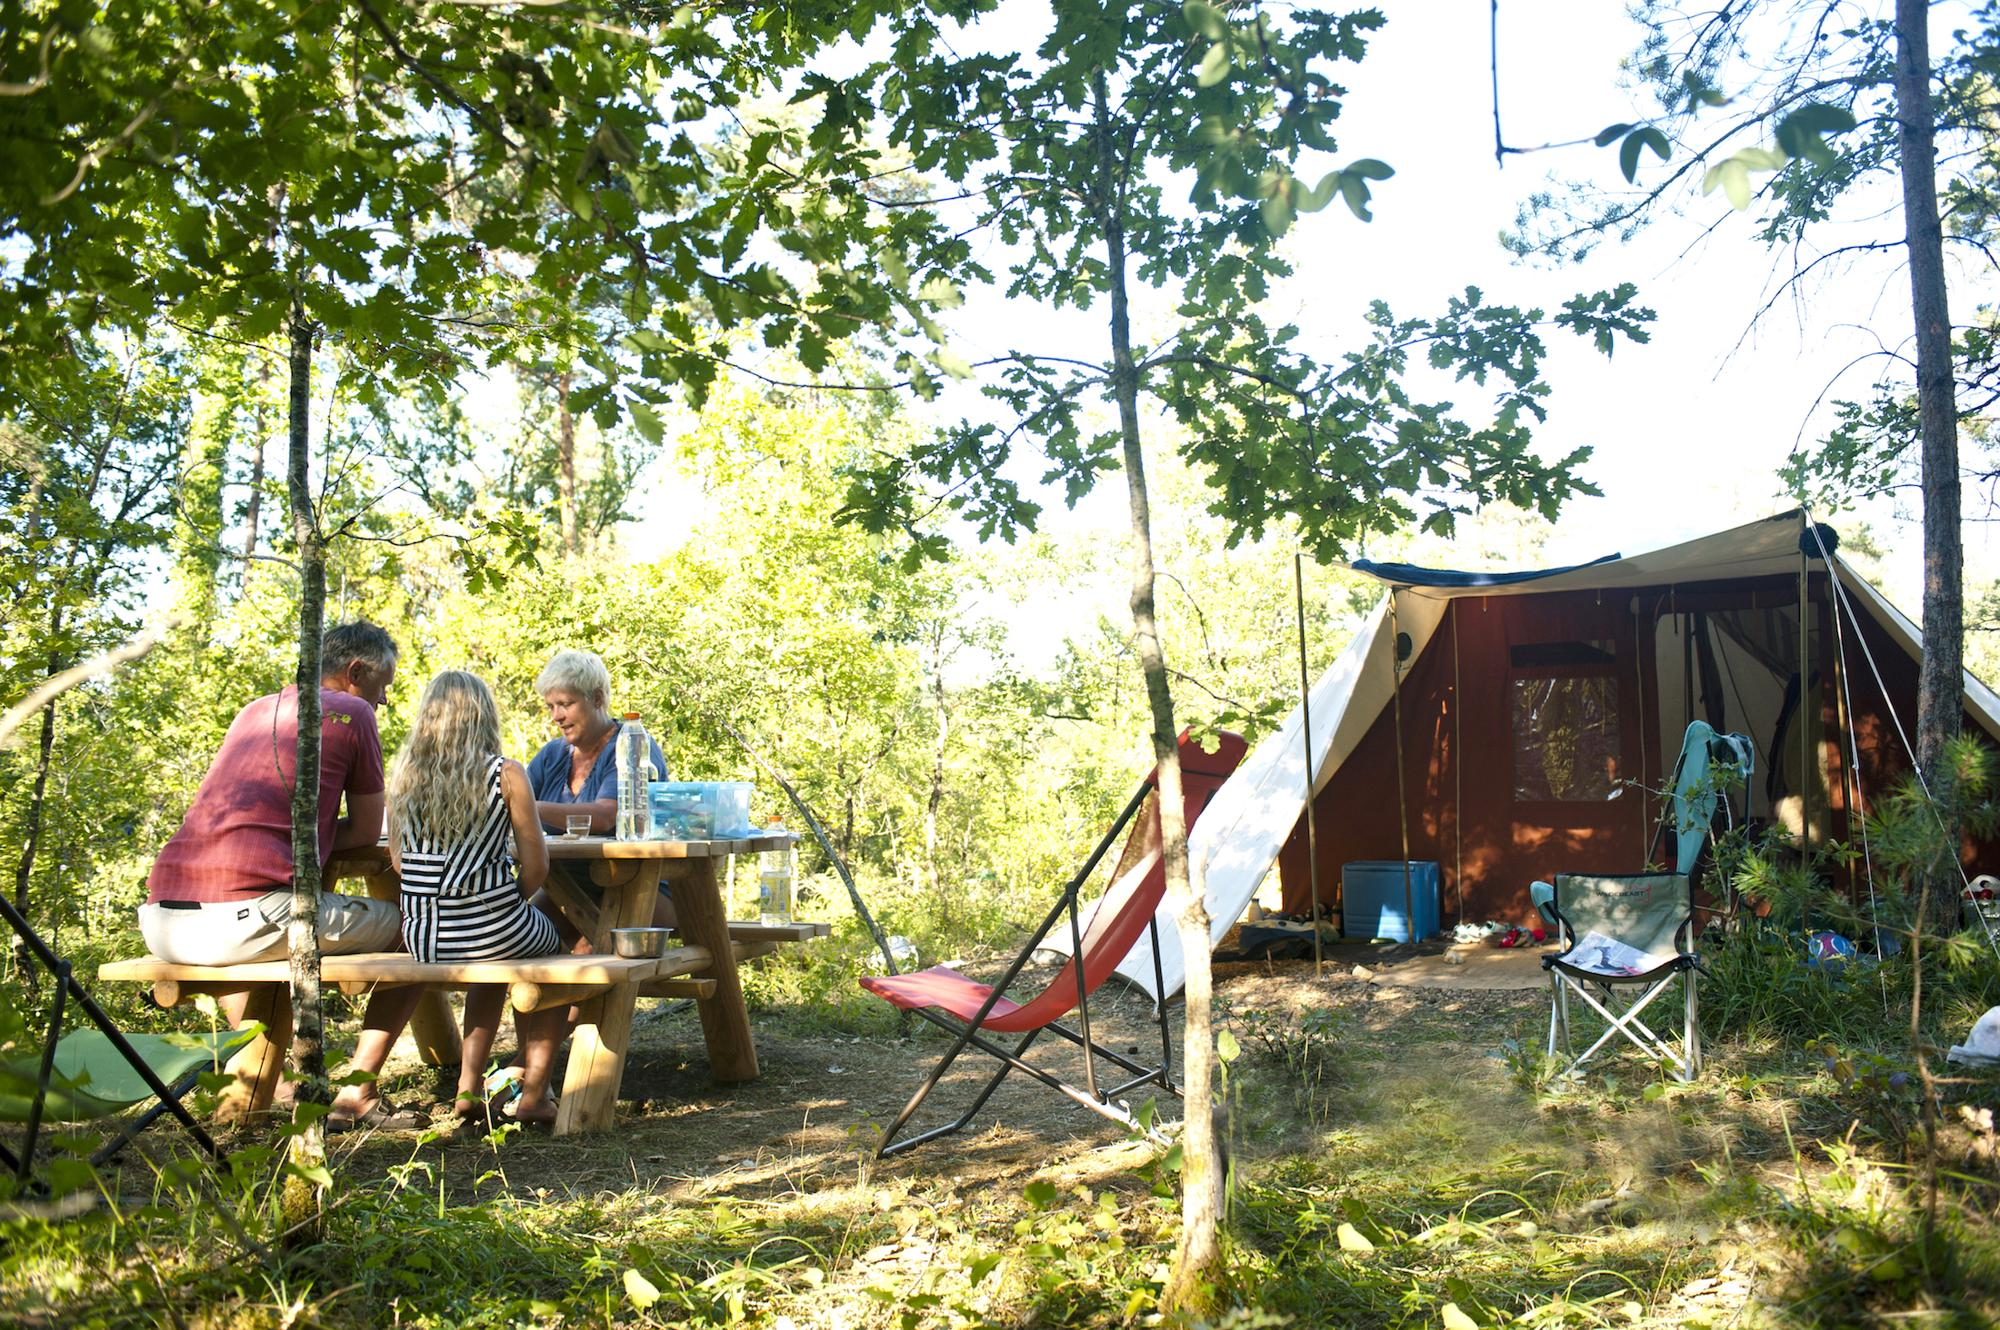 Woodland Camping in France - Forest Campsites & Woodland ...